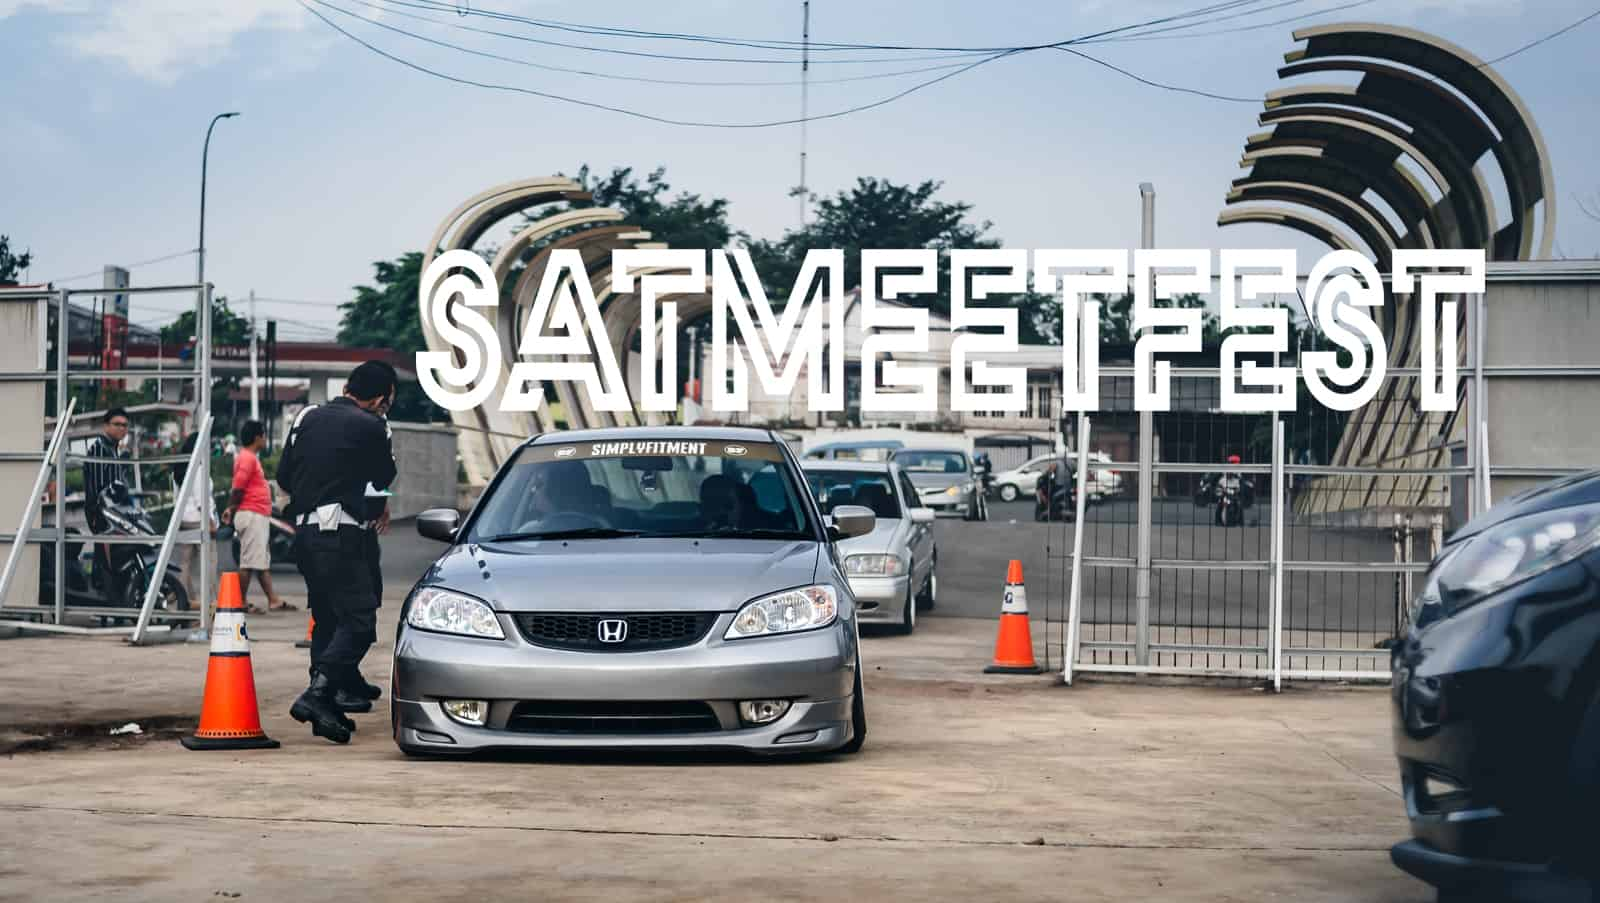 SATMEETFEST APRIL 2019